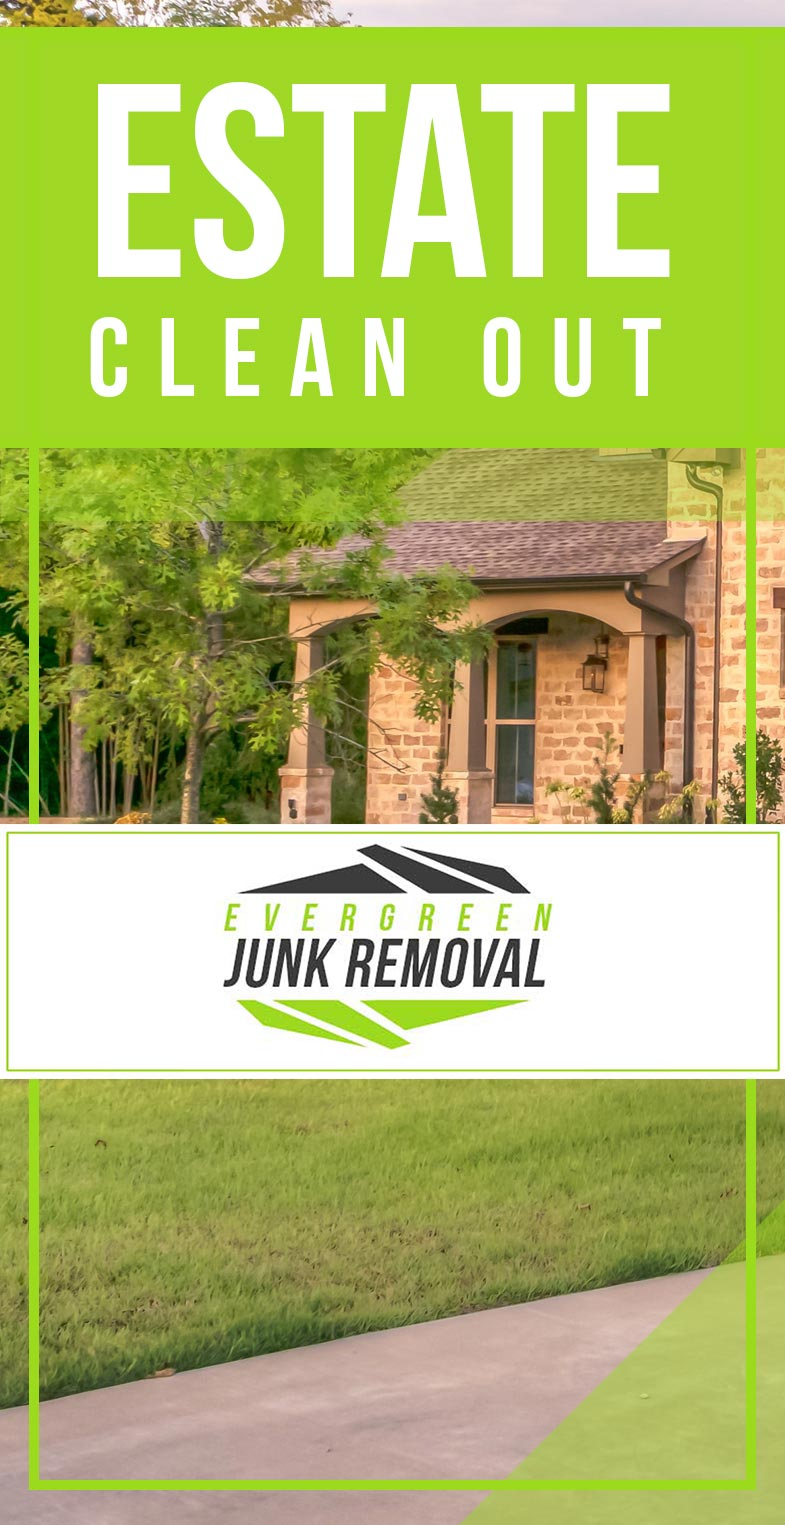 Baytown Property Clean Out